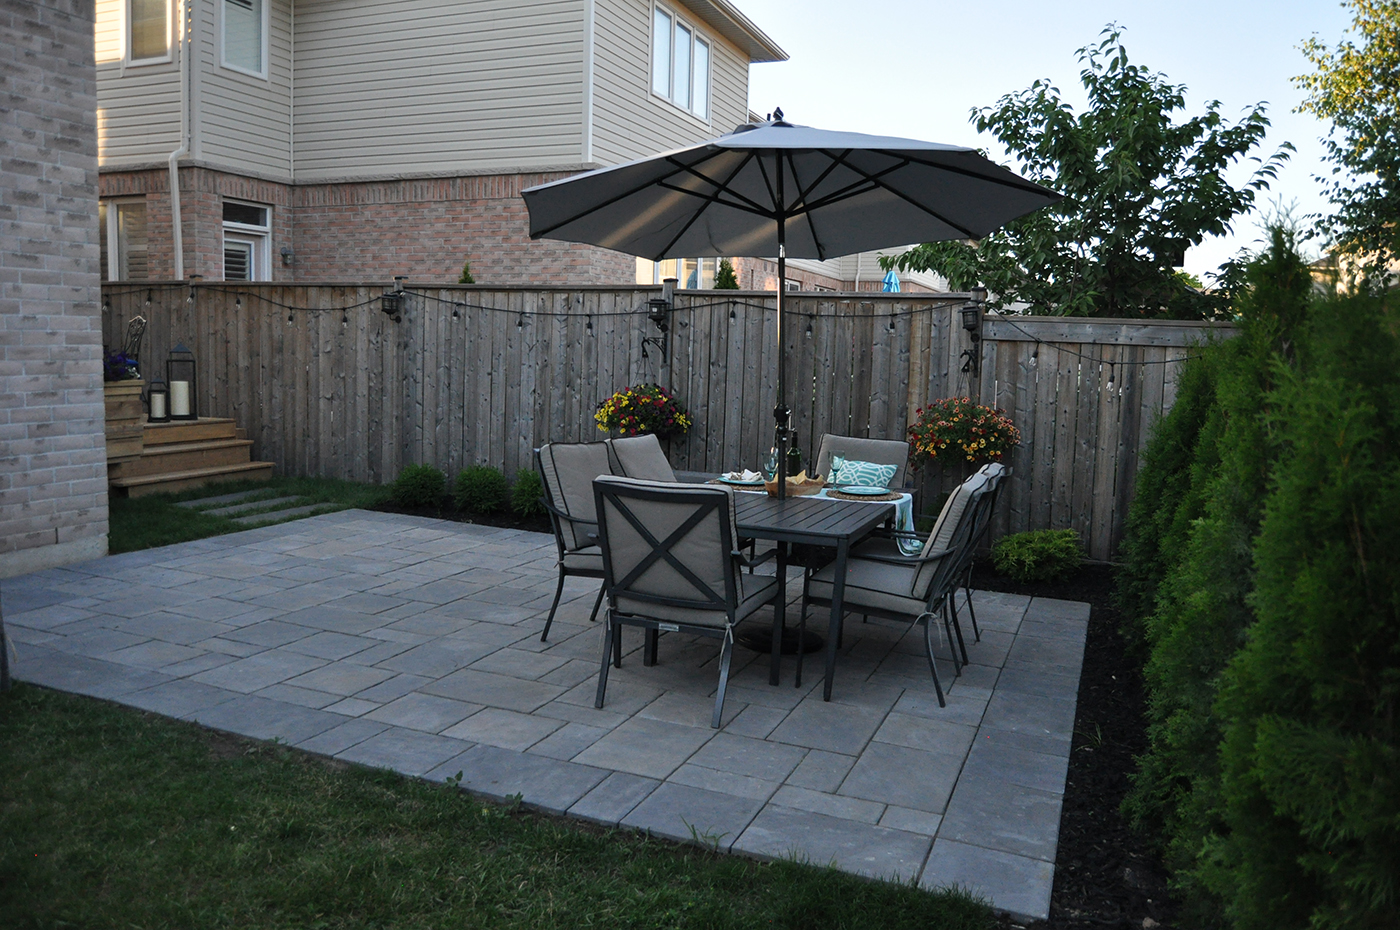 Amazing This Unilock Paver Patio Comprises Of Stones In Warm Subtle Colors For A  Romantic Yet Clean Look For This Patio. The Patio Is A Great Size To Fit A  Table ...